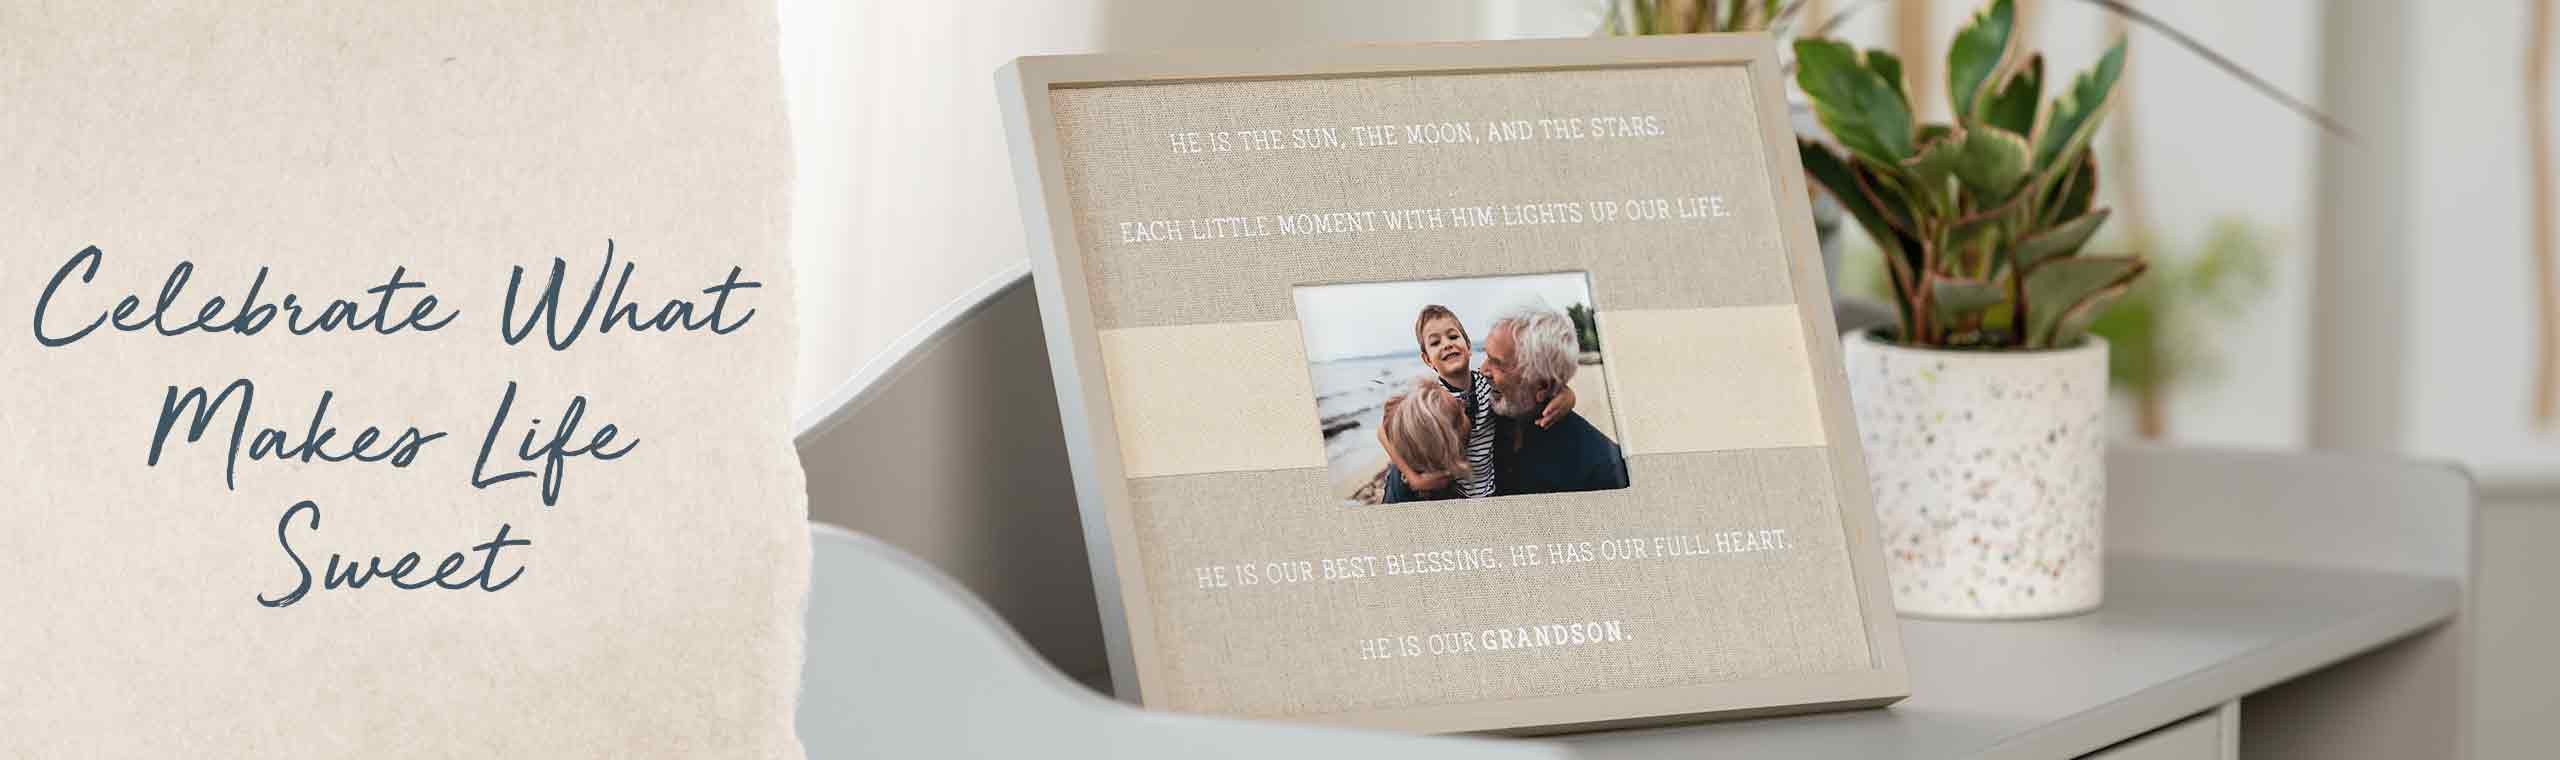 Celebrate what makes life sweet! a frame with a quote a about a grandparents grandson